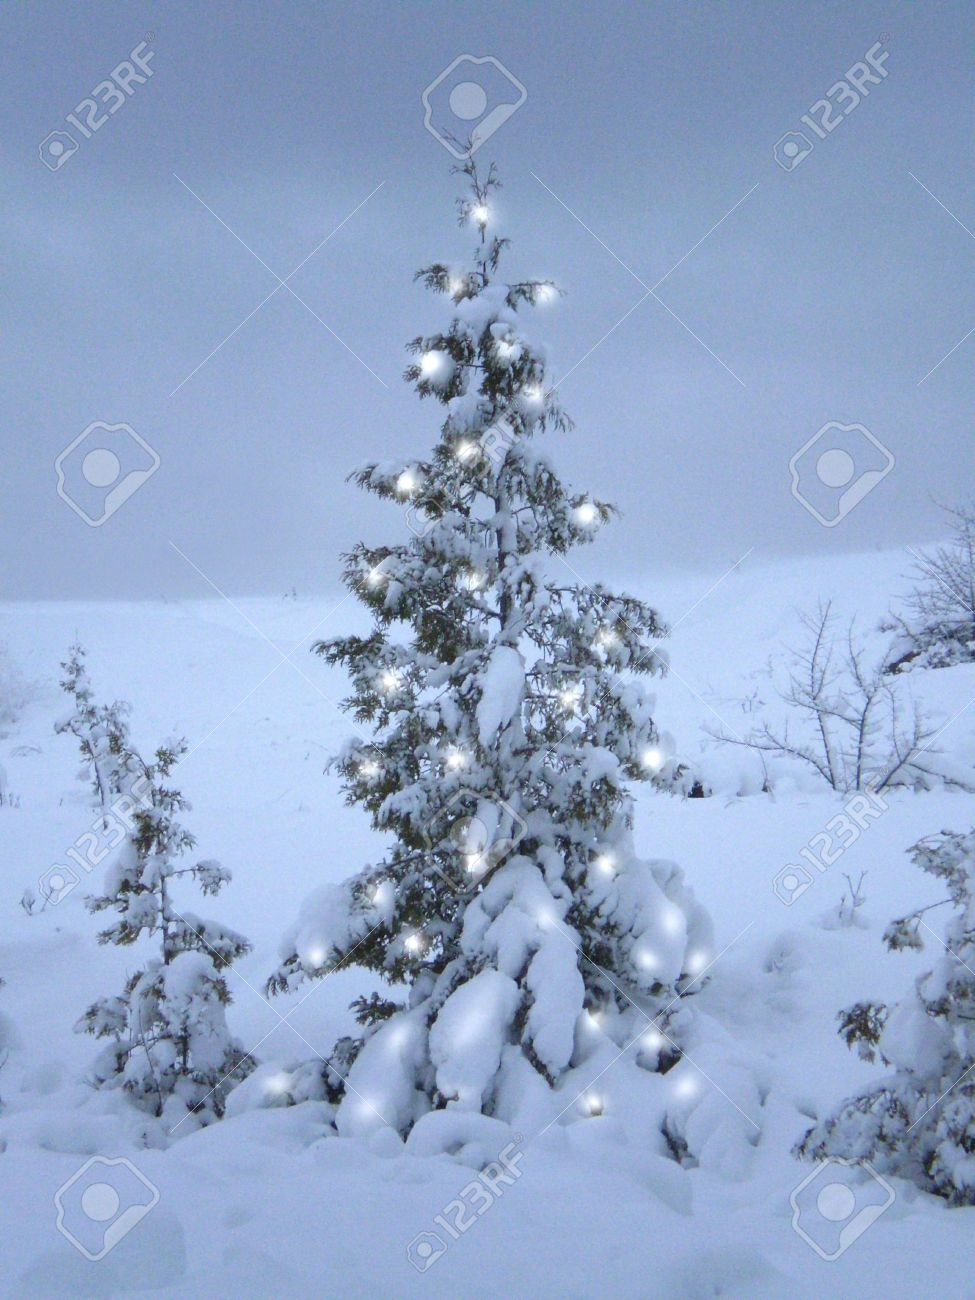 a snow covered christmas tree with lights stock photo 3962383 - Snow Covered Christmas Trees